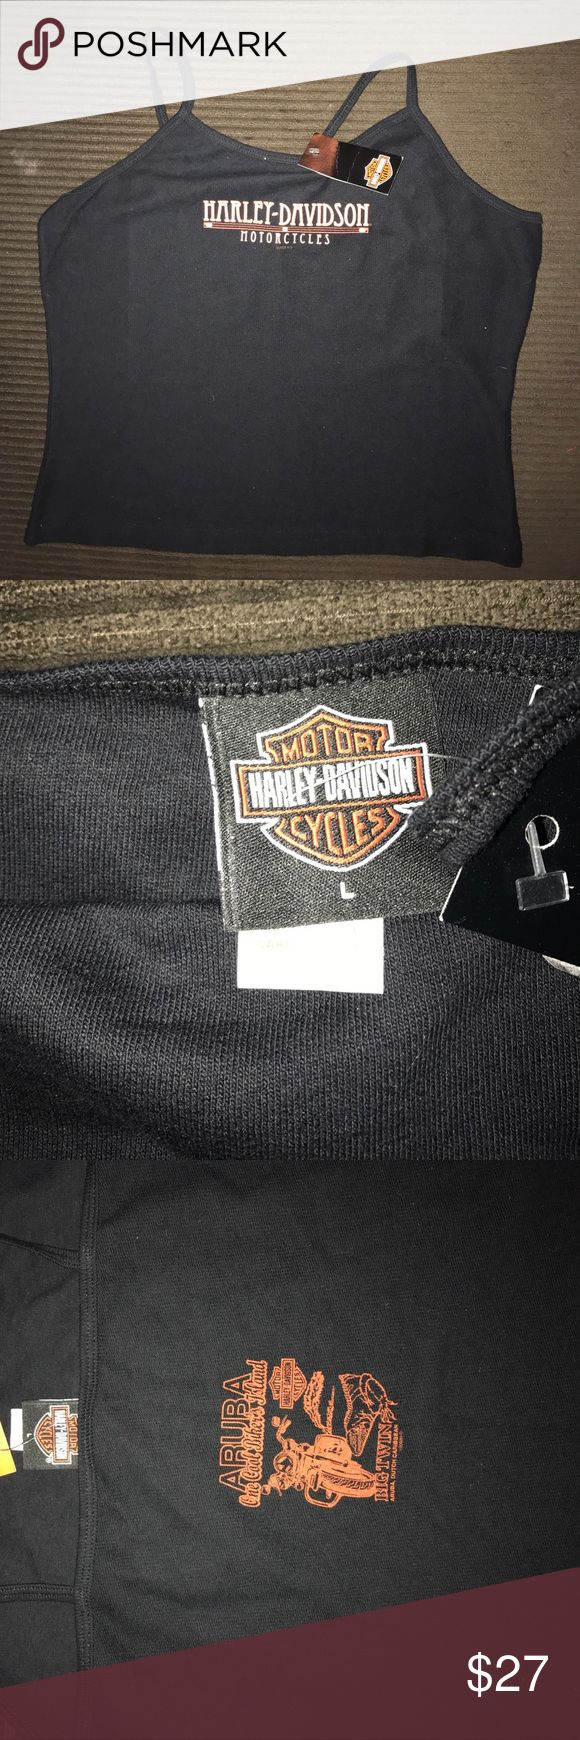 NWT-----H-D  crop tank top from Aruba NWT---- black H-D CROP TANK WITH ORANGE WRITING ON THE FRONT AND THE DEALER LOGO ON BACK Harley-Davidson Tops Tank Tops